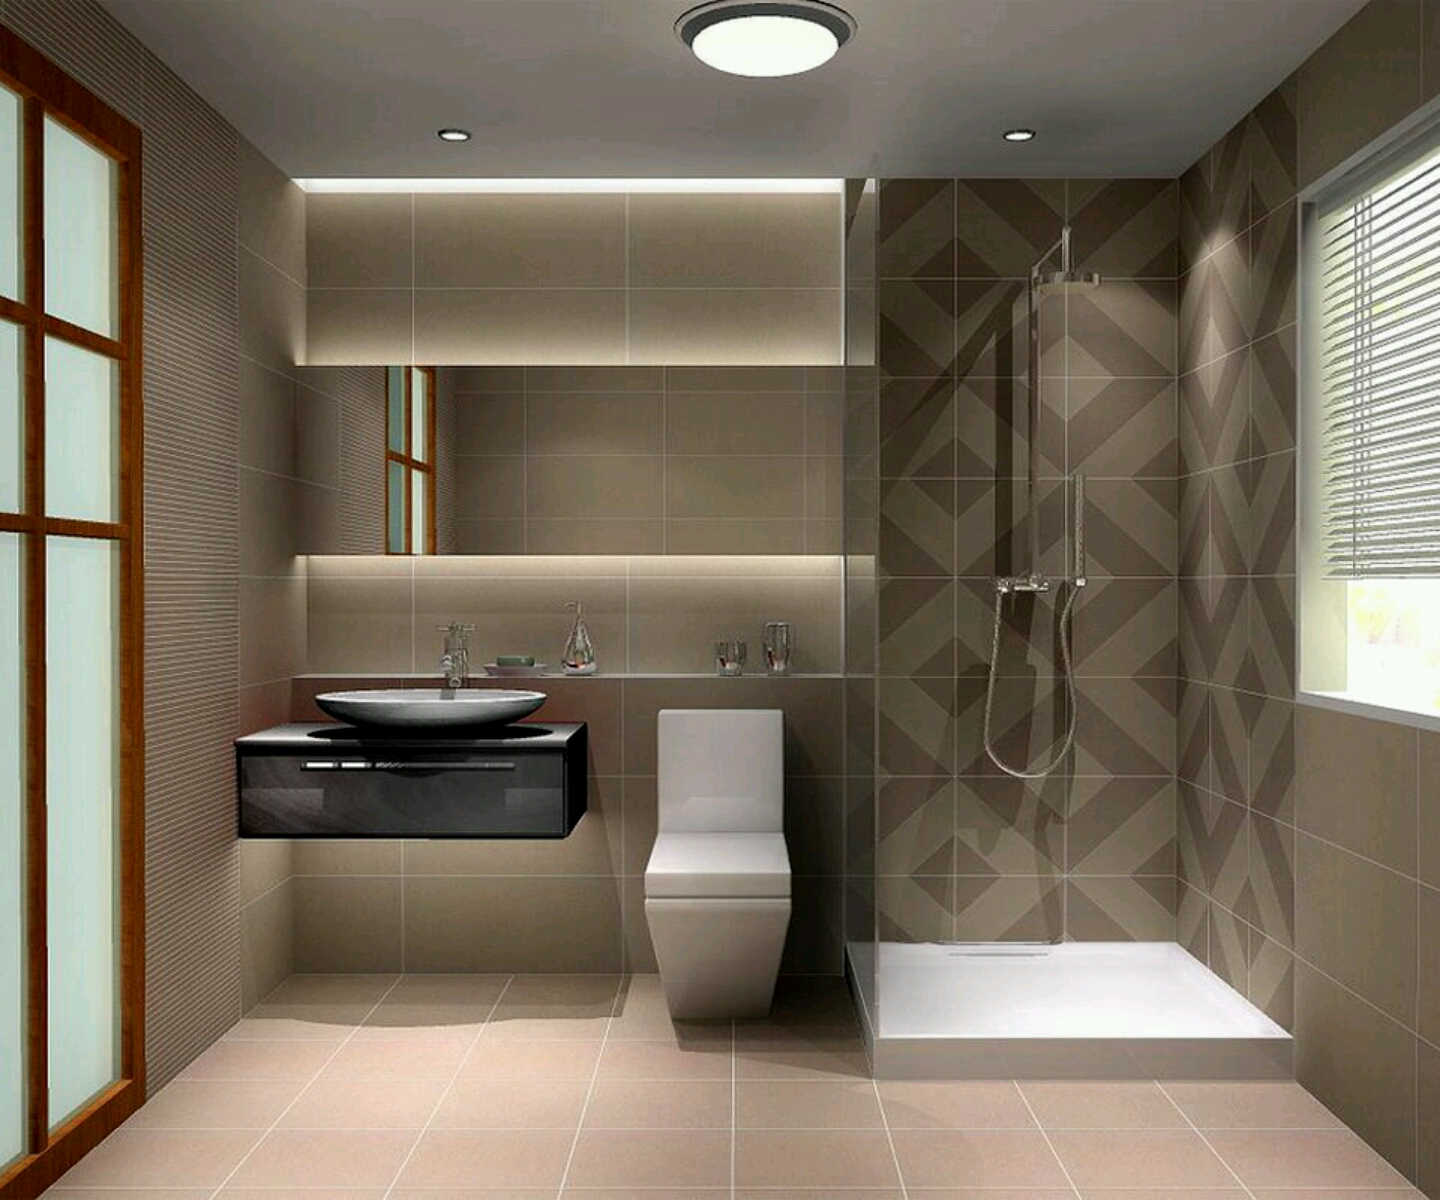 Small modern bathroom design 2017 grasscloth wallpaper for A small bathroom design